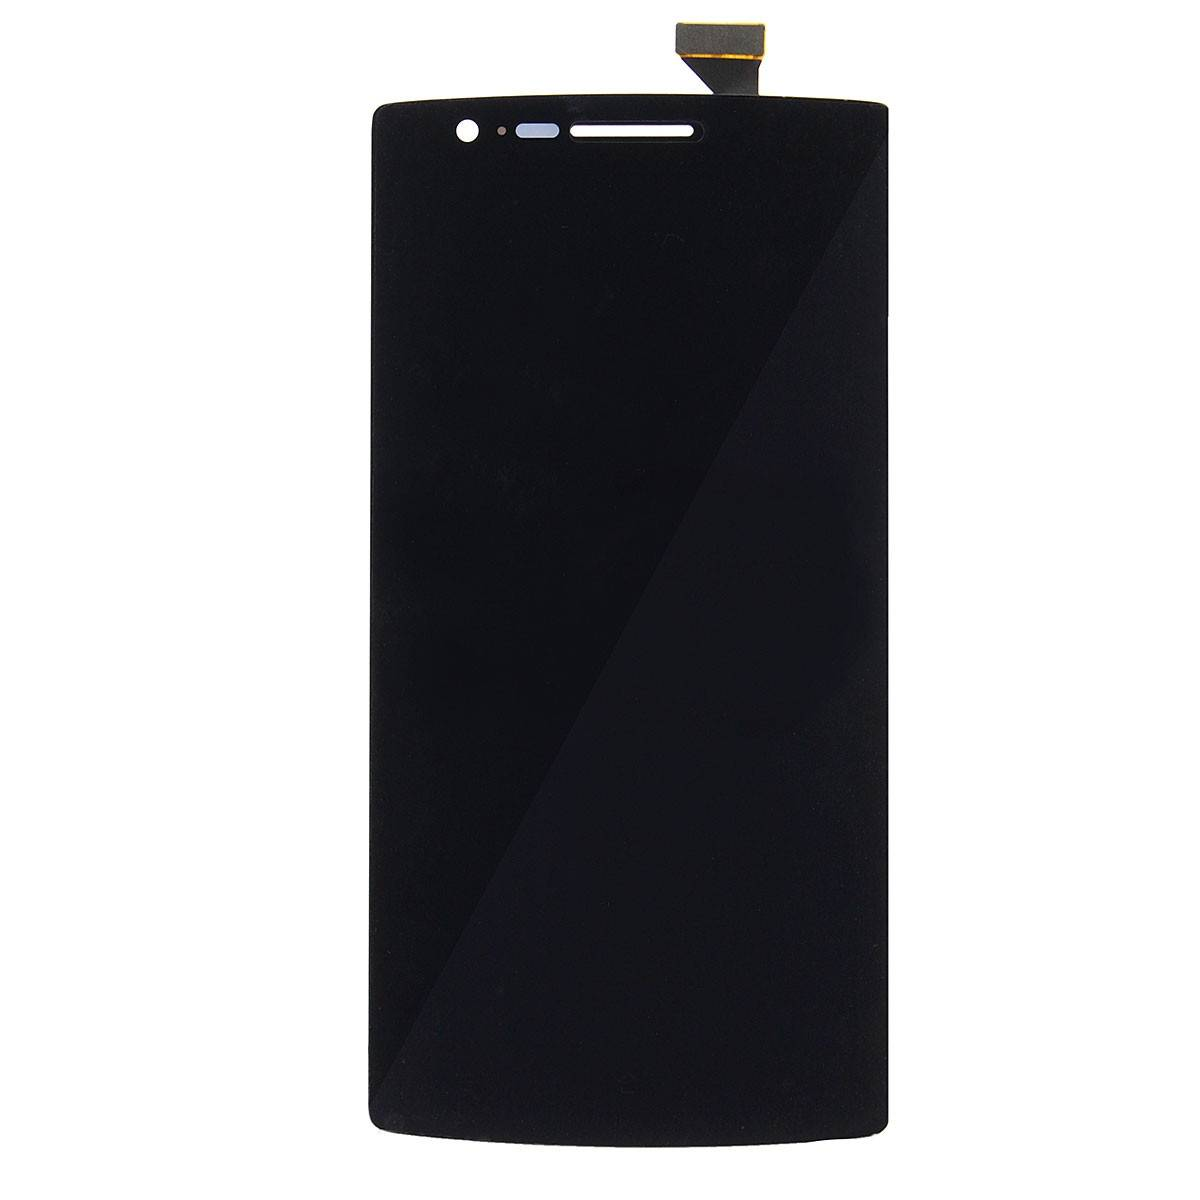 LCD Display Replacement Touch Screen Digitizer